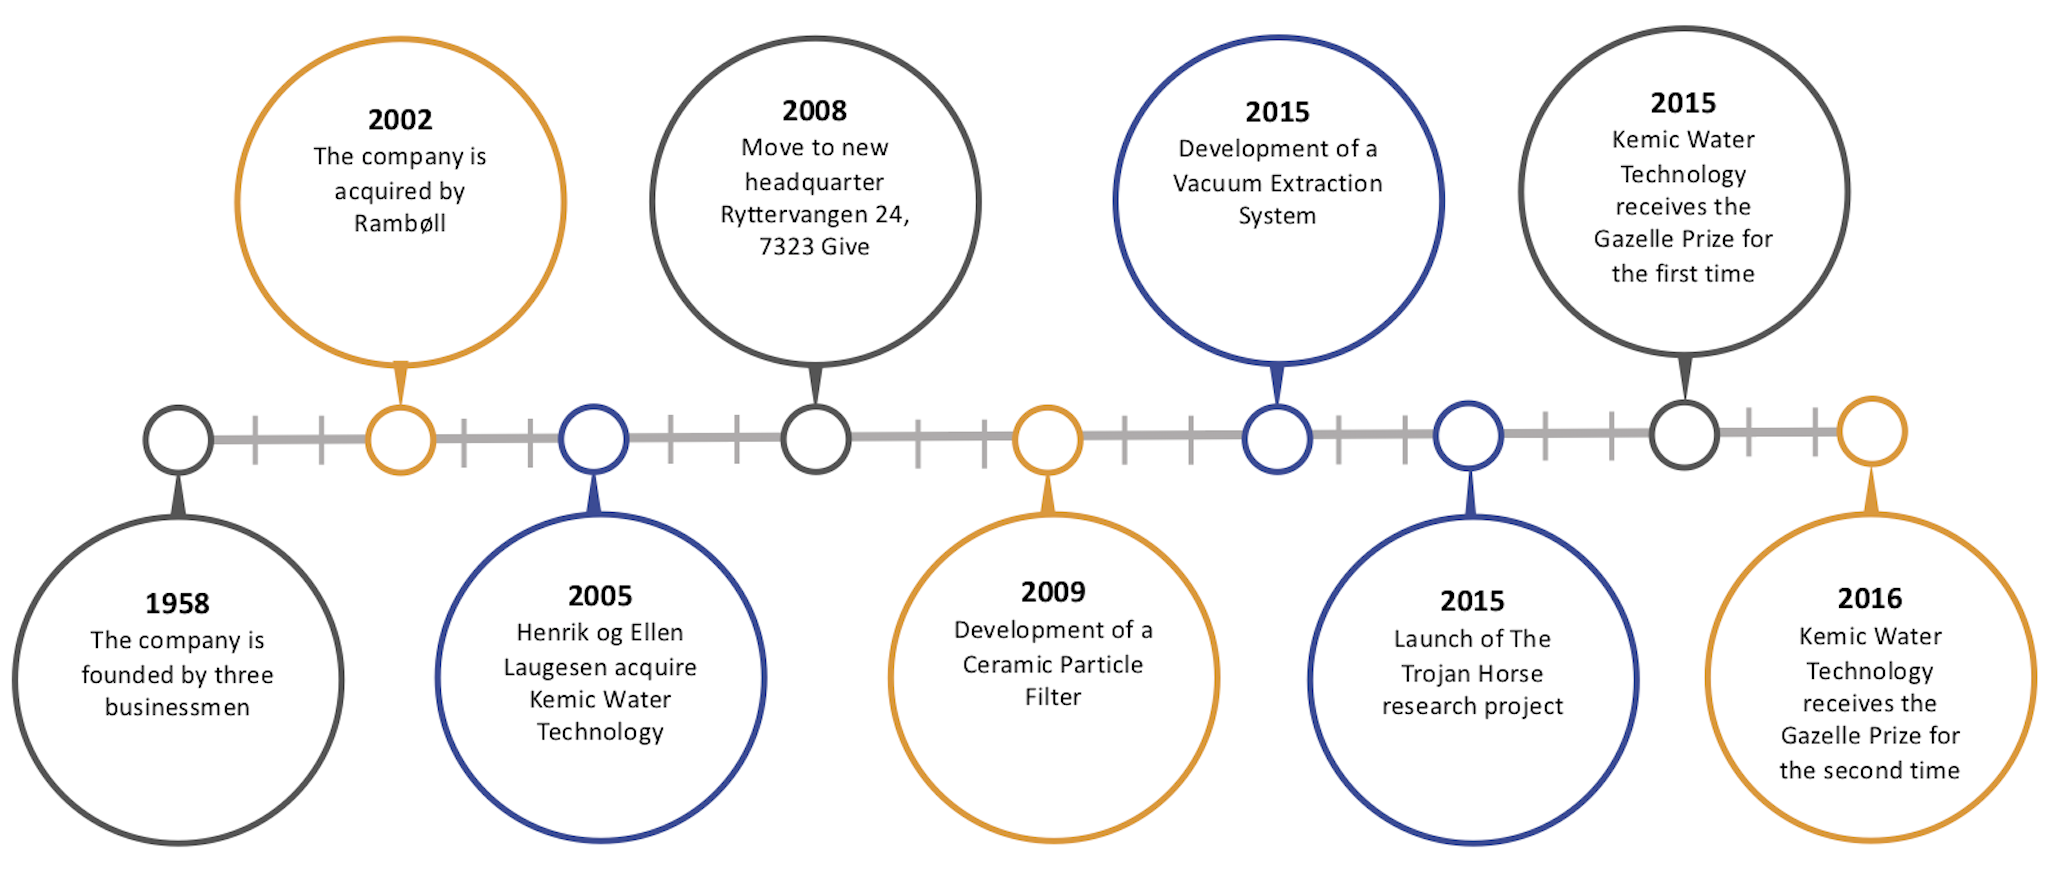 A Timeline of Kemic Water Technology's story